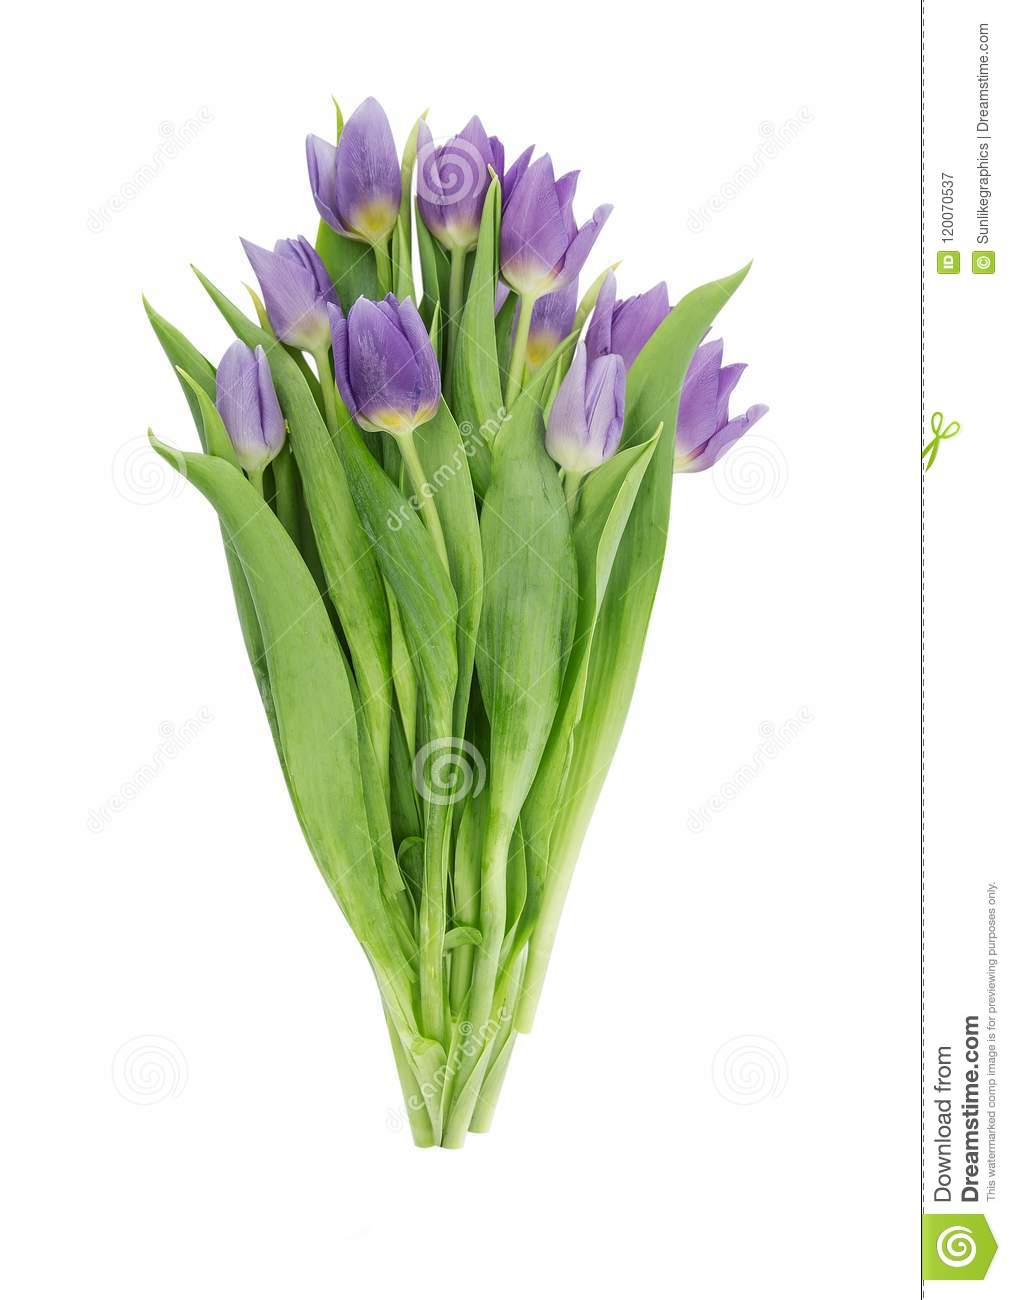 d10a8dda20e8b Bouquet Of Tulips Isolated On White Background Clipping Path Stock ...